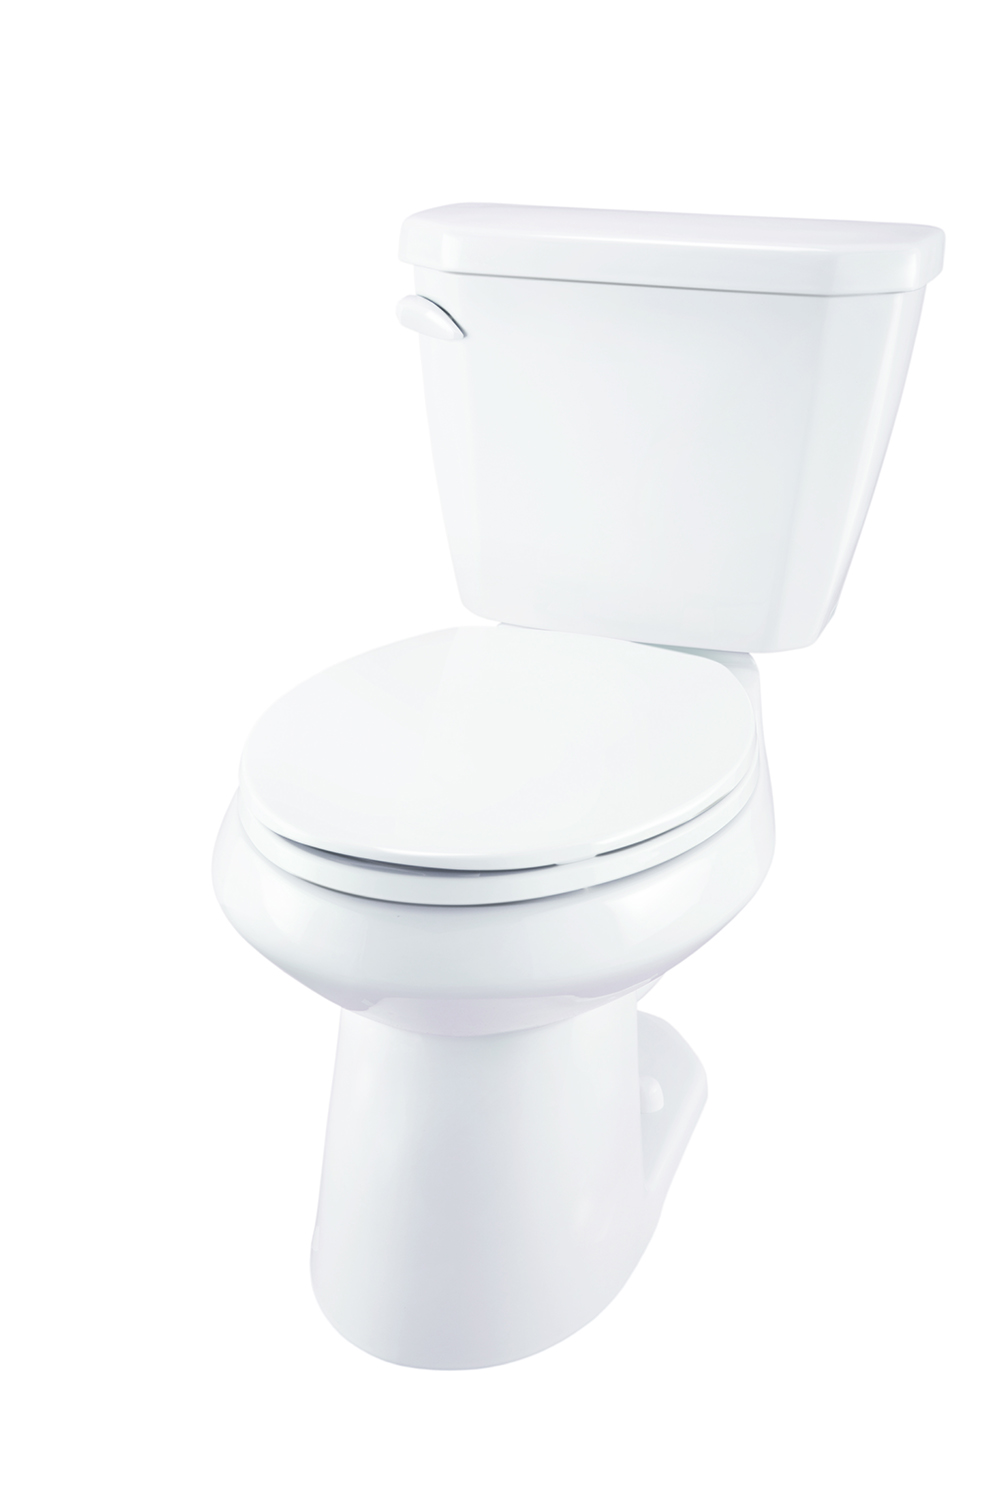 Our easy-to-use picture index can help you figure out which toilet model